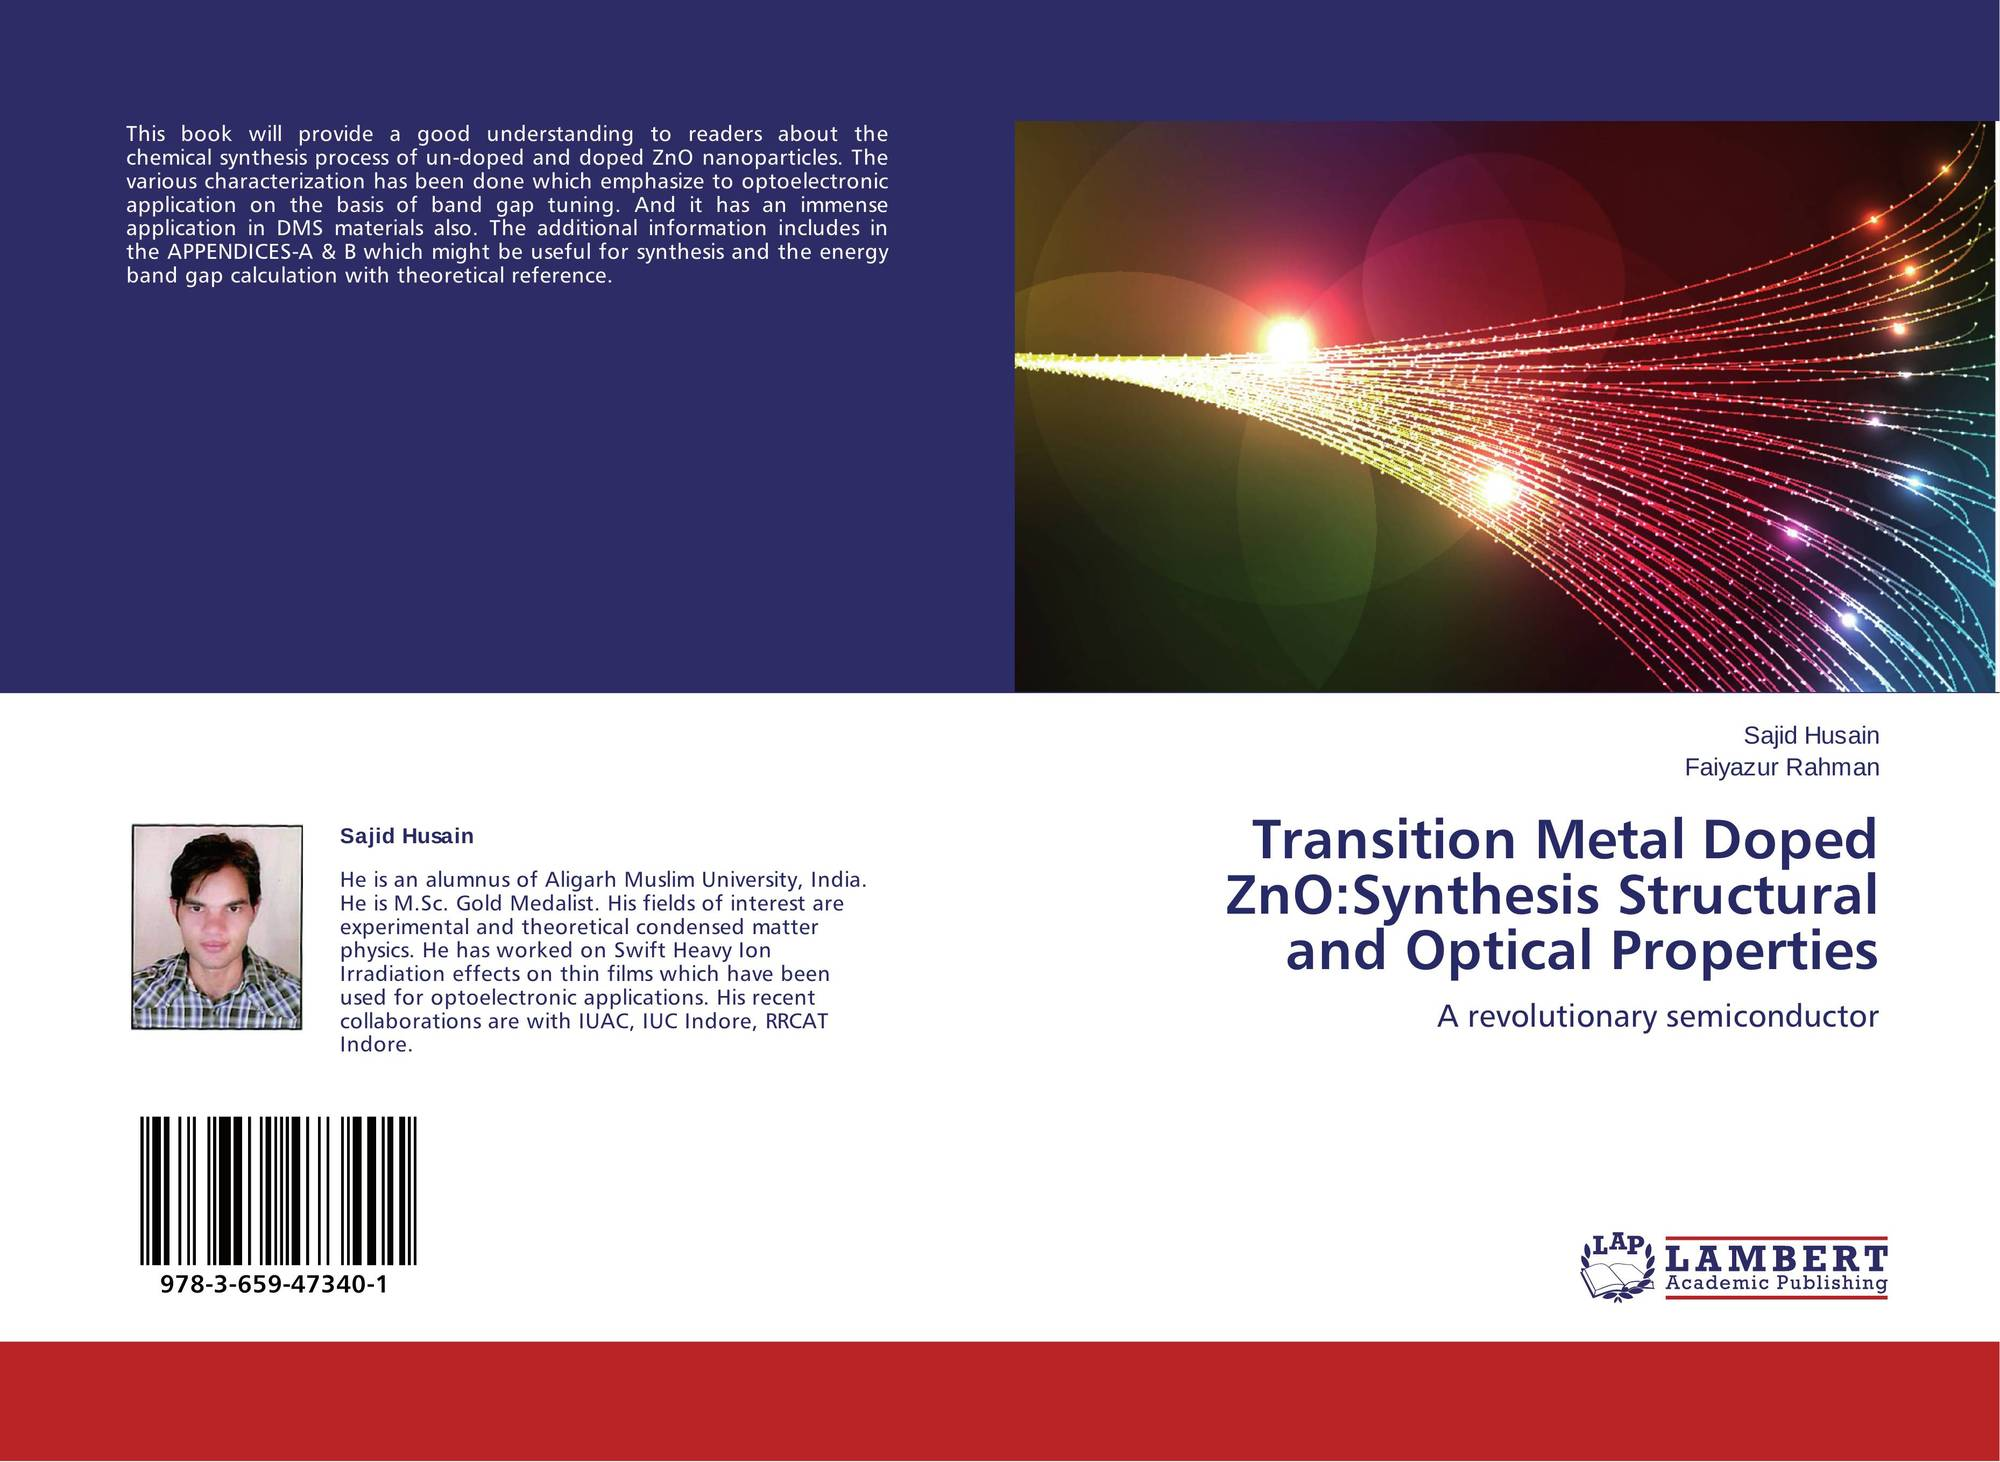 thesis synthesis zno nanoparticles A low-cost, green and reproducible probiotic microbe (lactobacillus sporogens) mediated biosynthesis of zno nanoparticles is reported the synthesis is performed akin to room tem-perature in five replicate samples x-ray and transmission electron microscopy analyses are performed to ascertain the formation of zno nanoparticles rietveld analysis to the x-ray data indicated that zno.